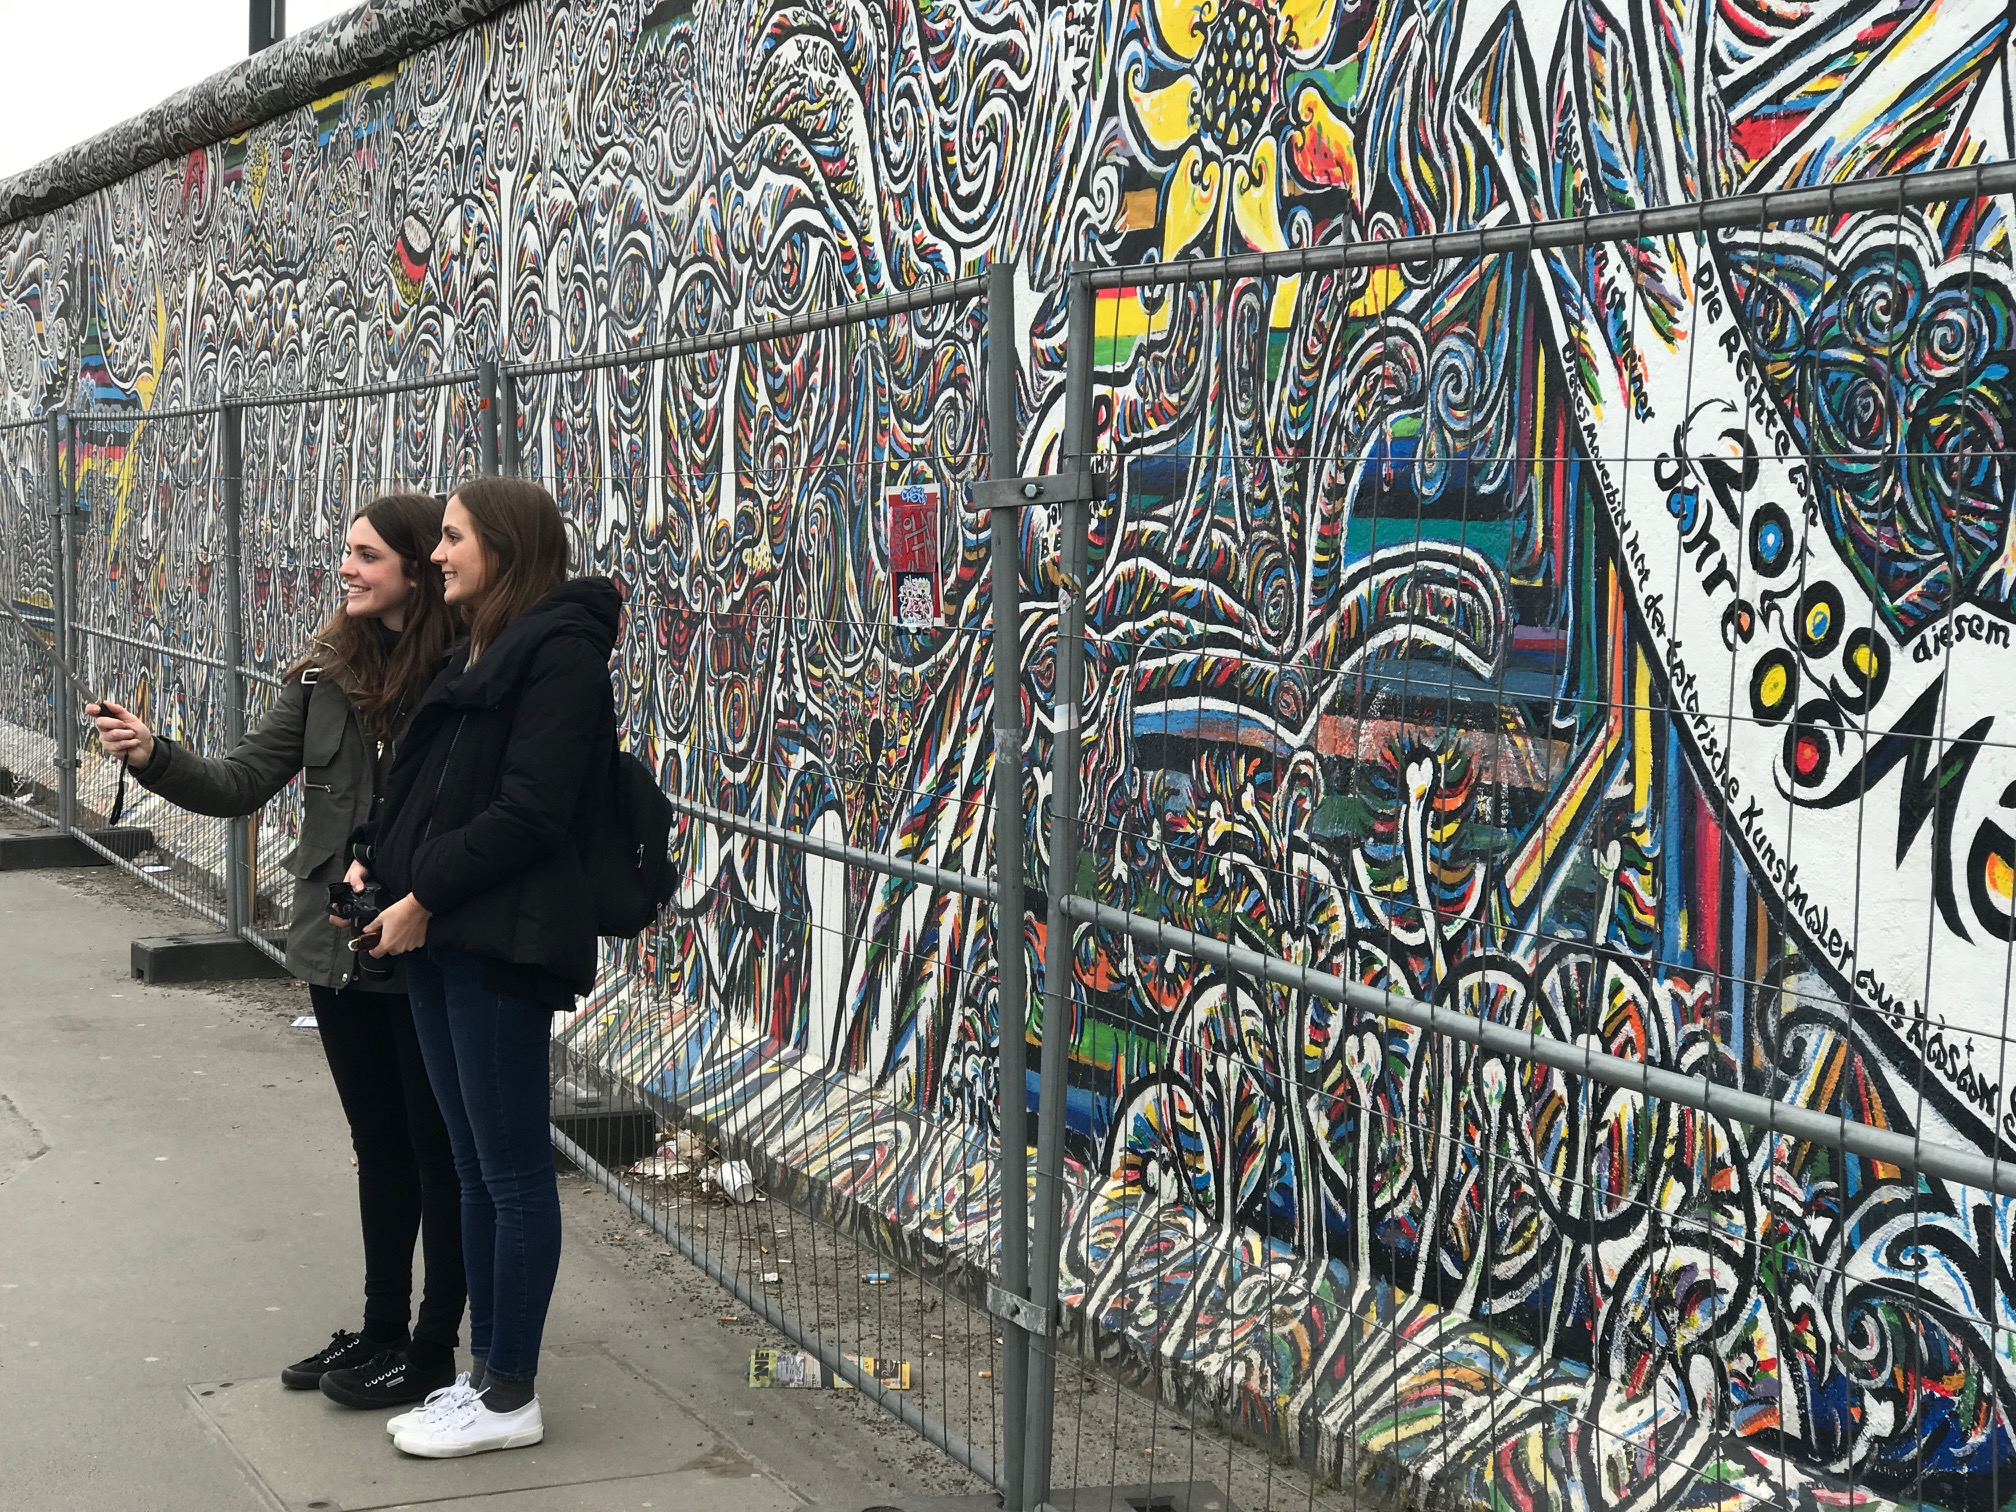 Tourists are more interested in selfies than looking at the art.  Perhaps you can't blame them when you have to look through a fence to see the art.